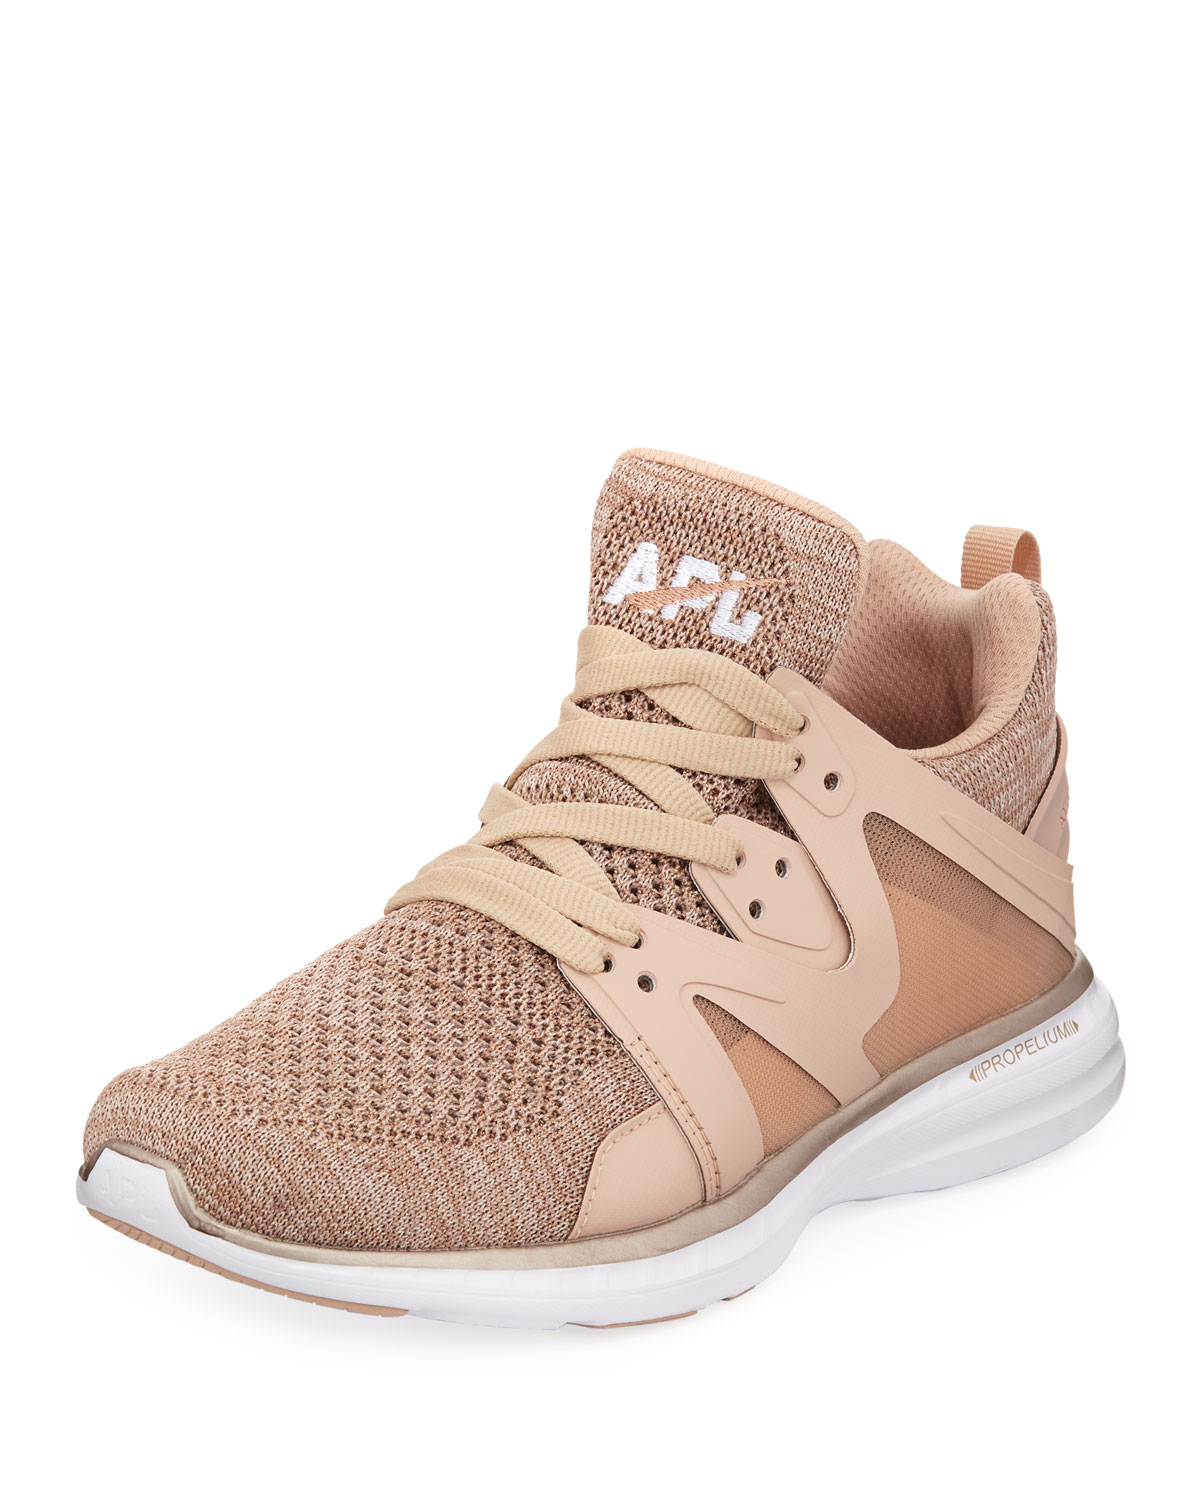 Athletic-Propulsion-Labs-APL-Ascend..-2 +80 Most Inspiring Workout Shoes Ideas for Women